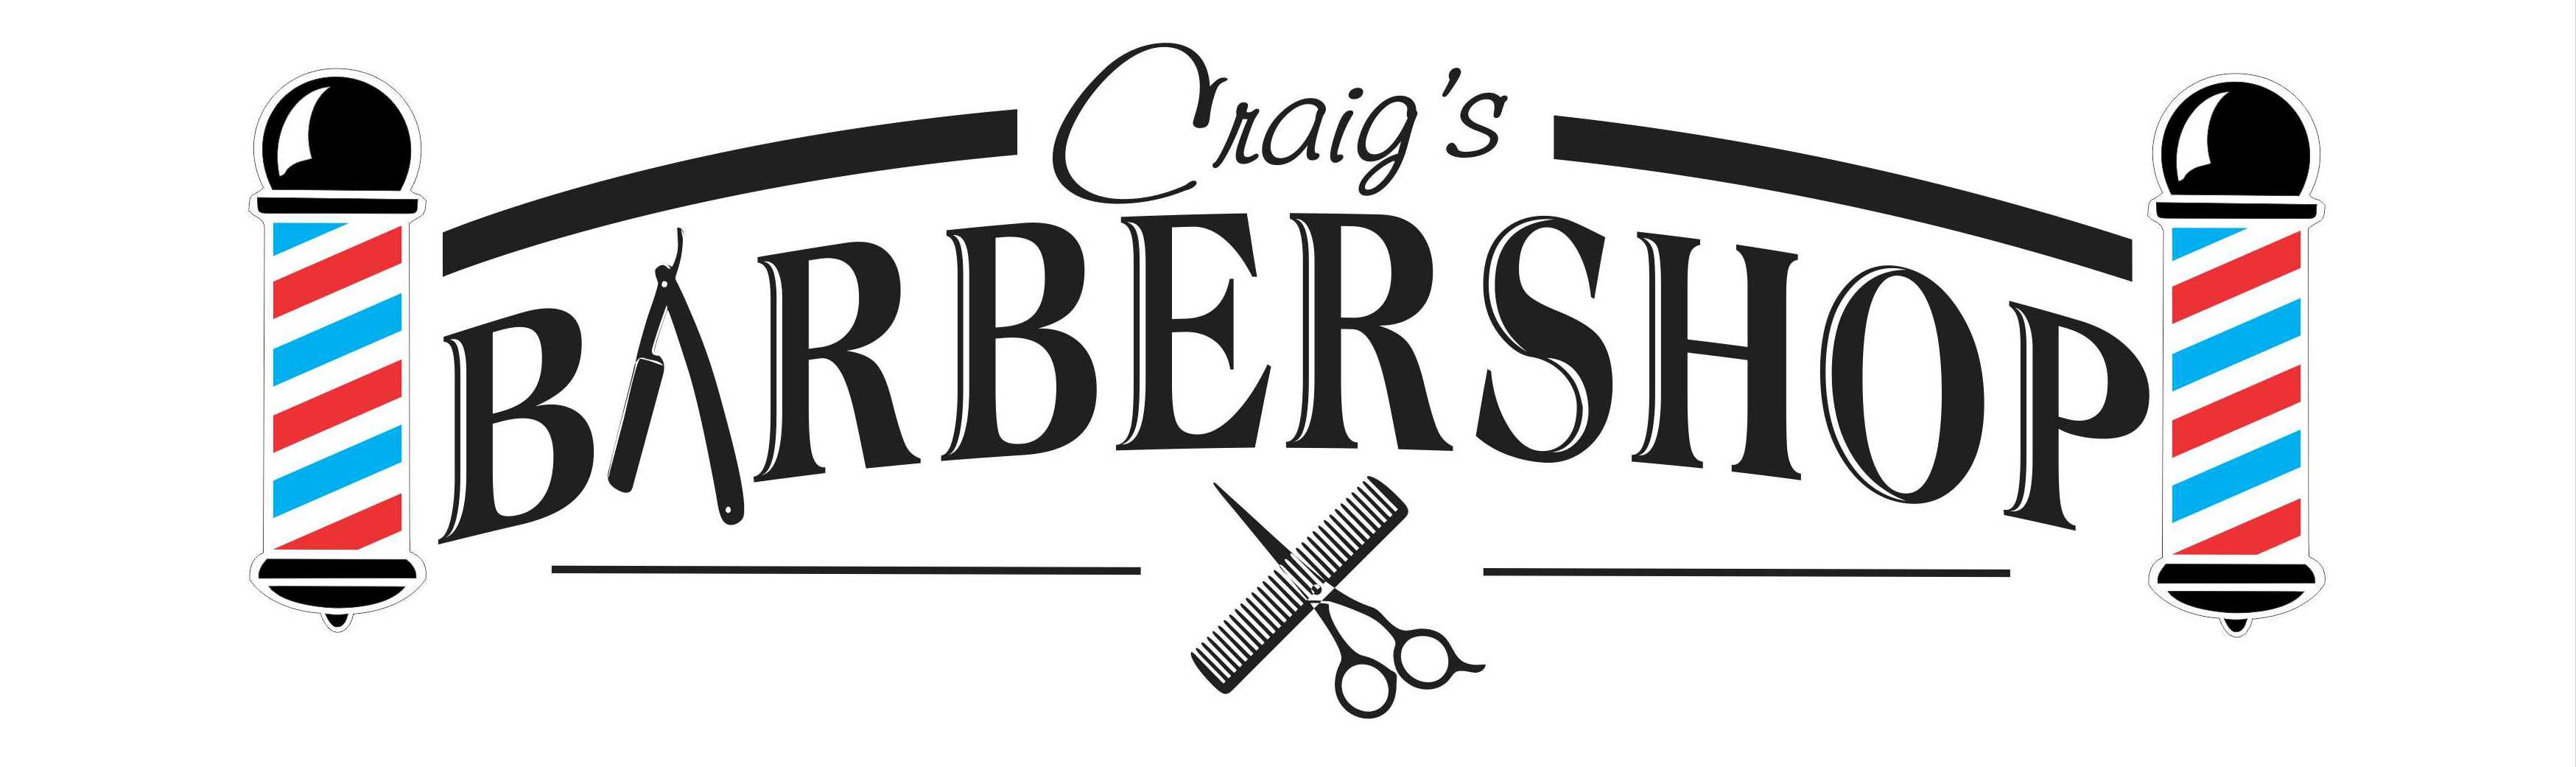 Barber Shop PNG Transparent Barber Shop.PNG Images..